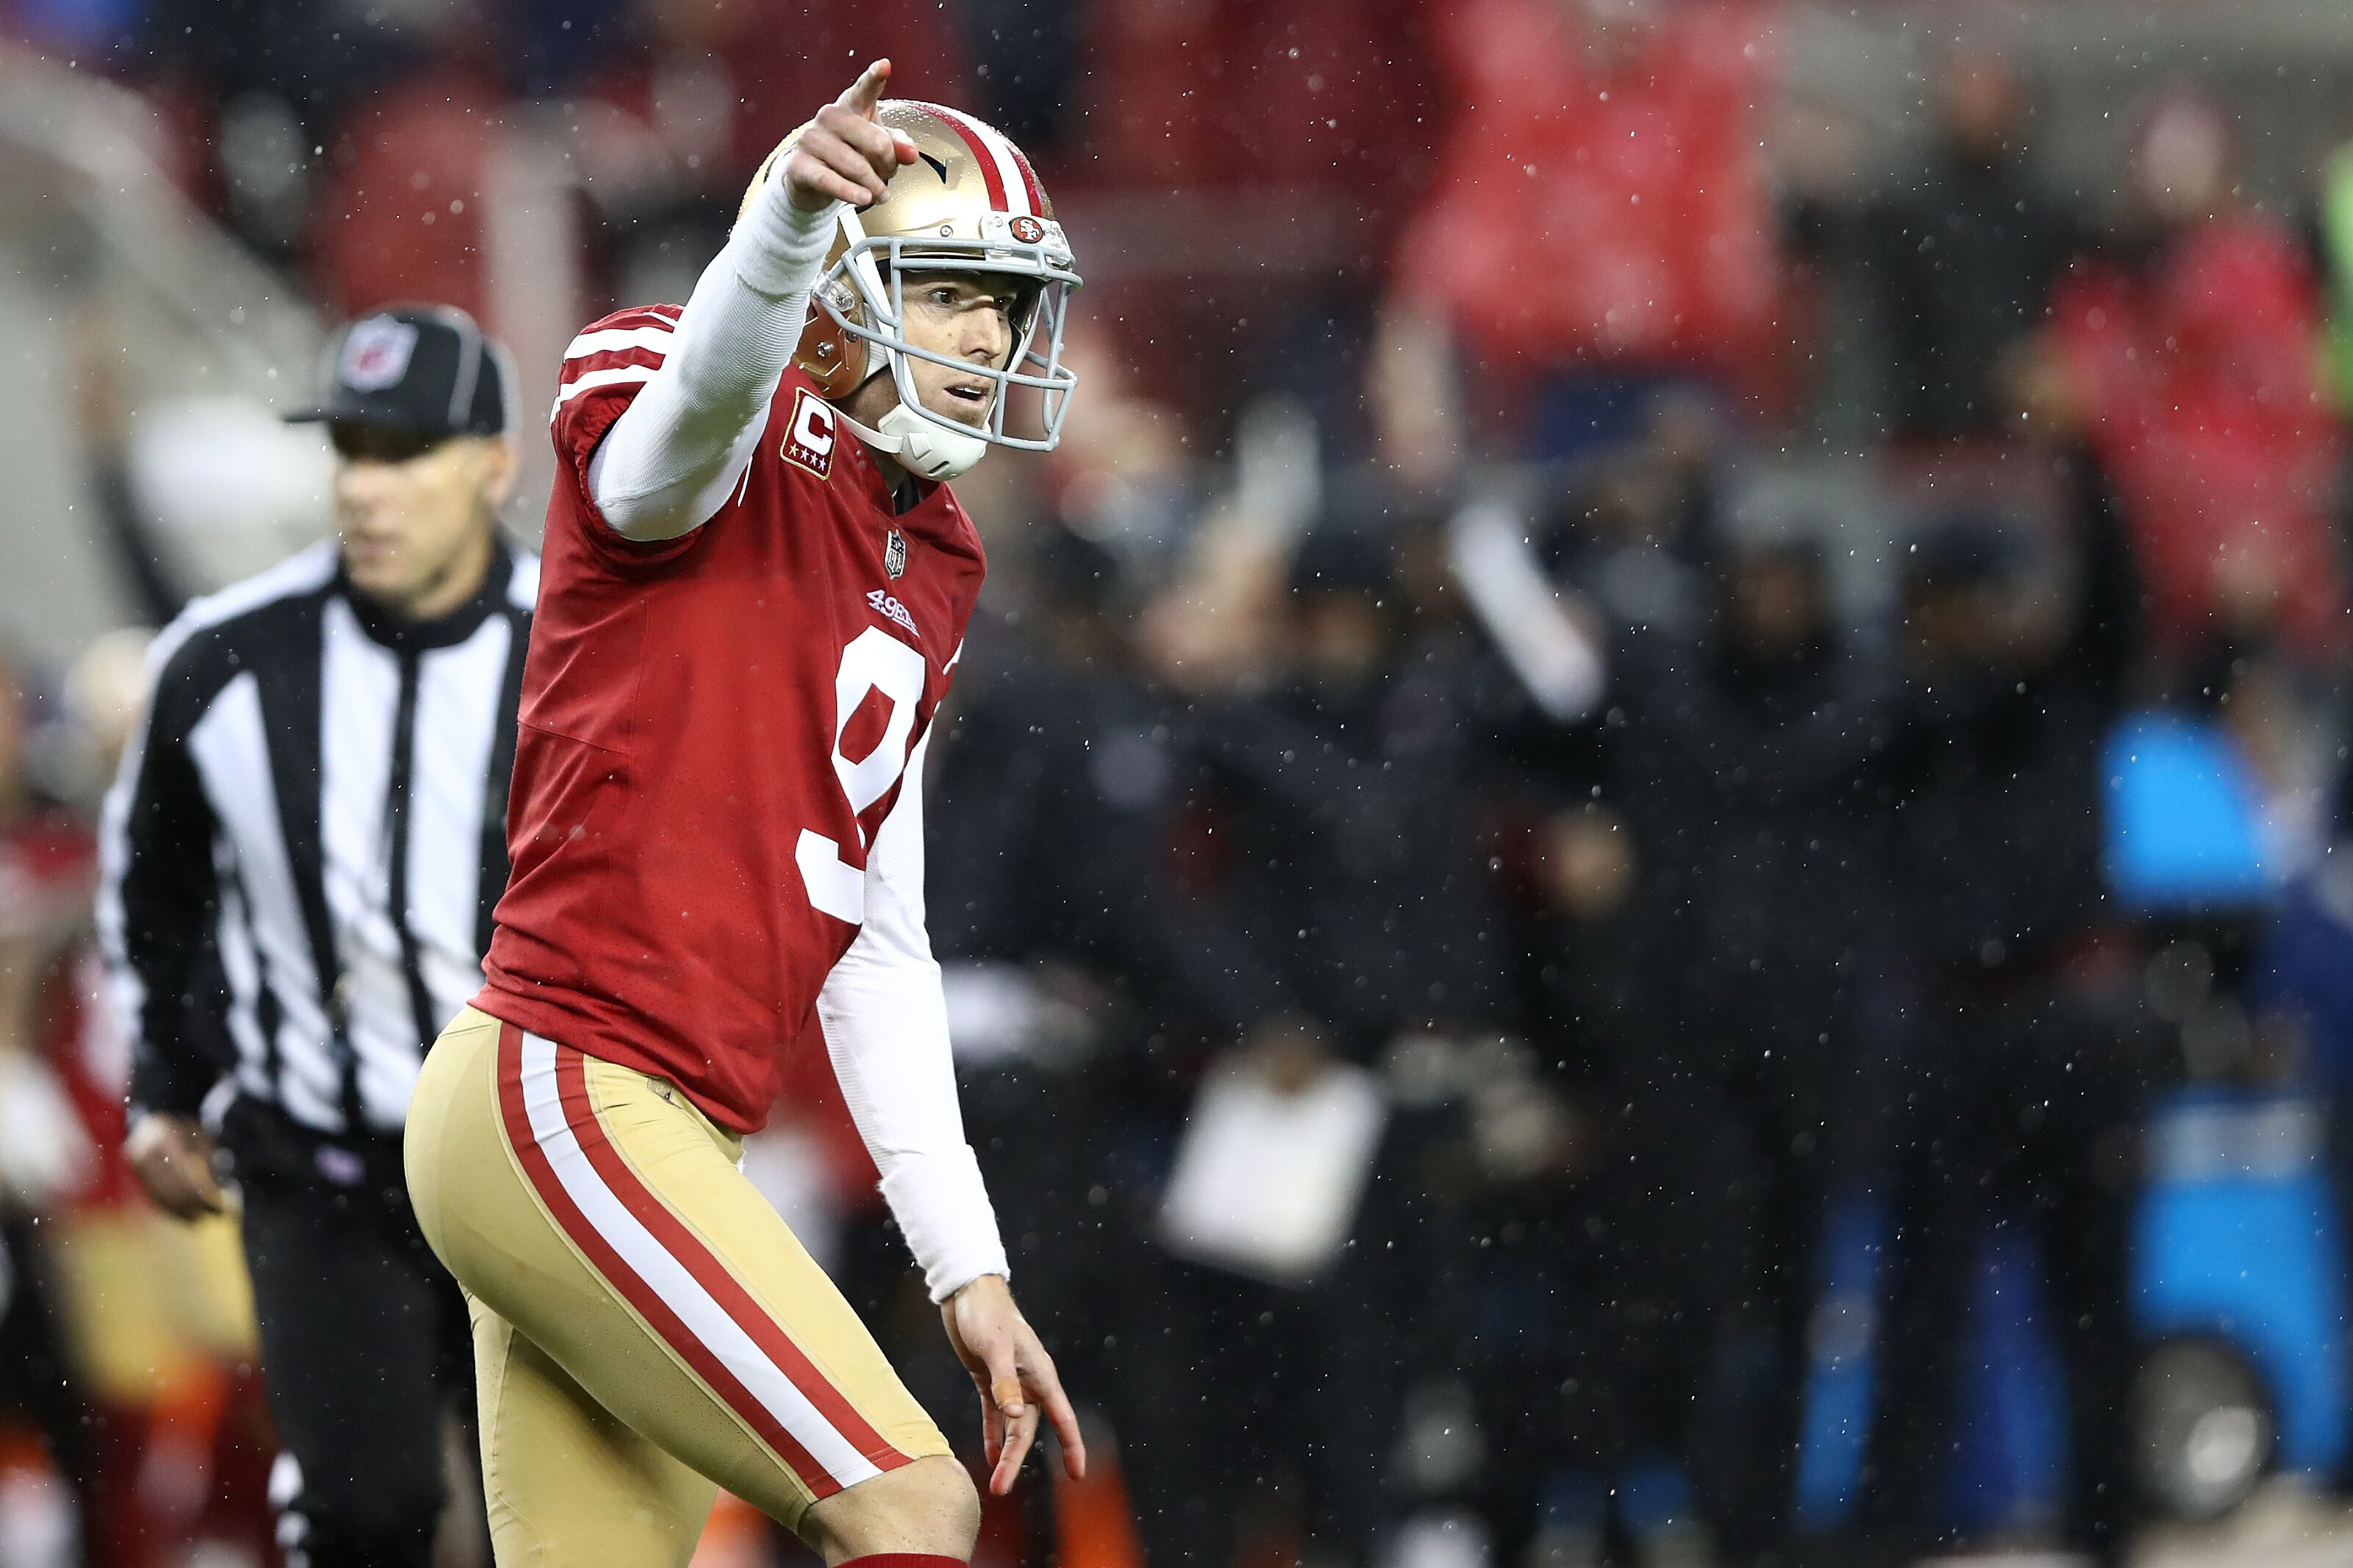 Robbie Gould wants out, are the Chicago Bears in?